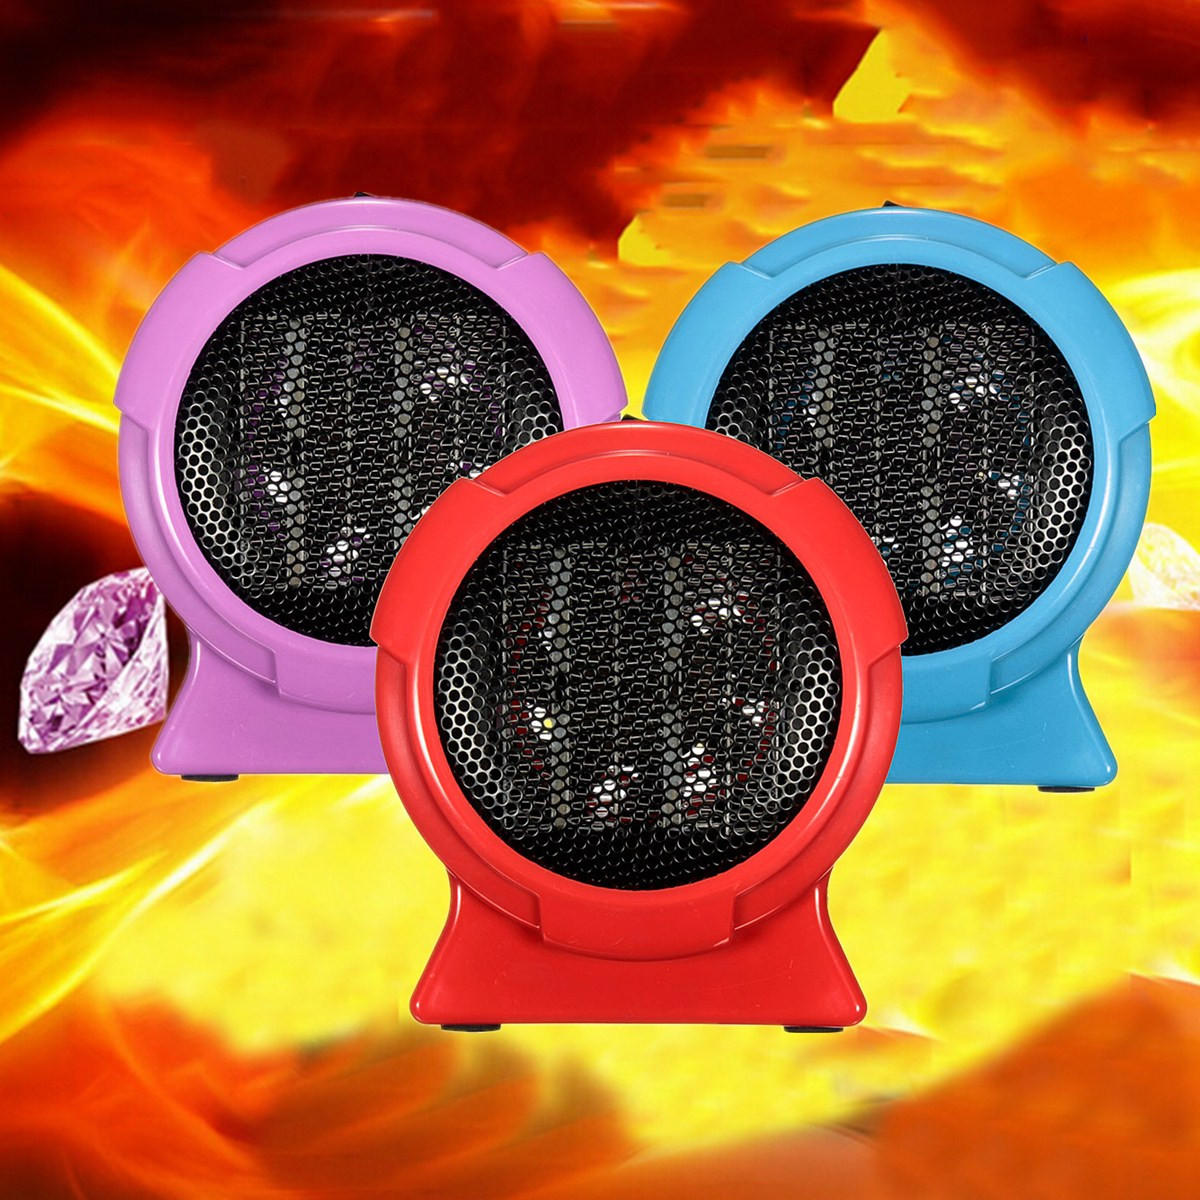 220V Mini Winter Warm Home Office Desktop Dry Electricity Energy Heater Grille Outlet Gift Machine Hot Air Fan